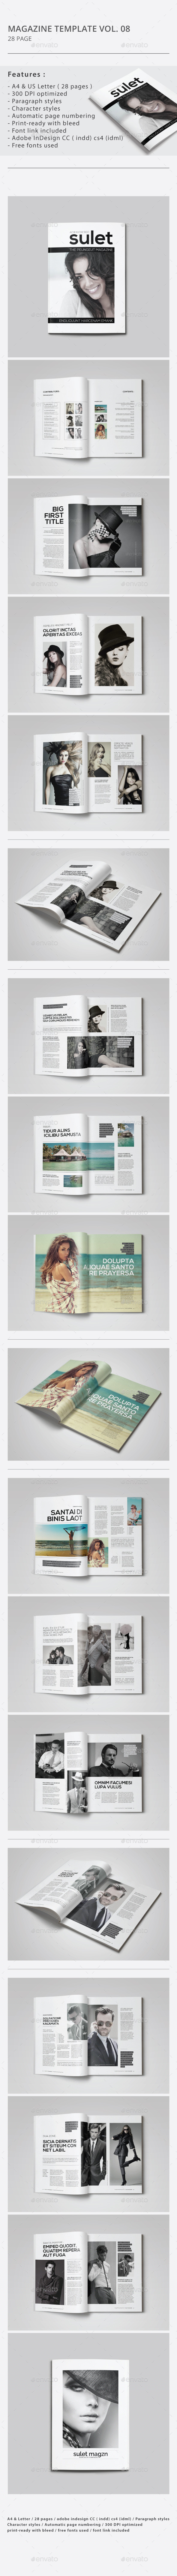 Indesign Magazine Template Vol.08 - Magazines Print Templates